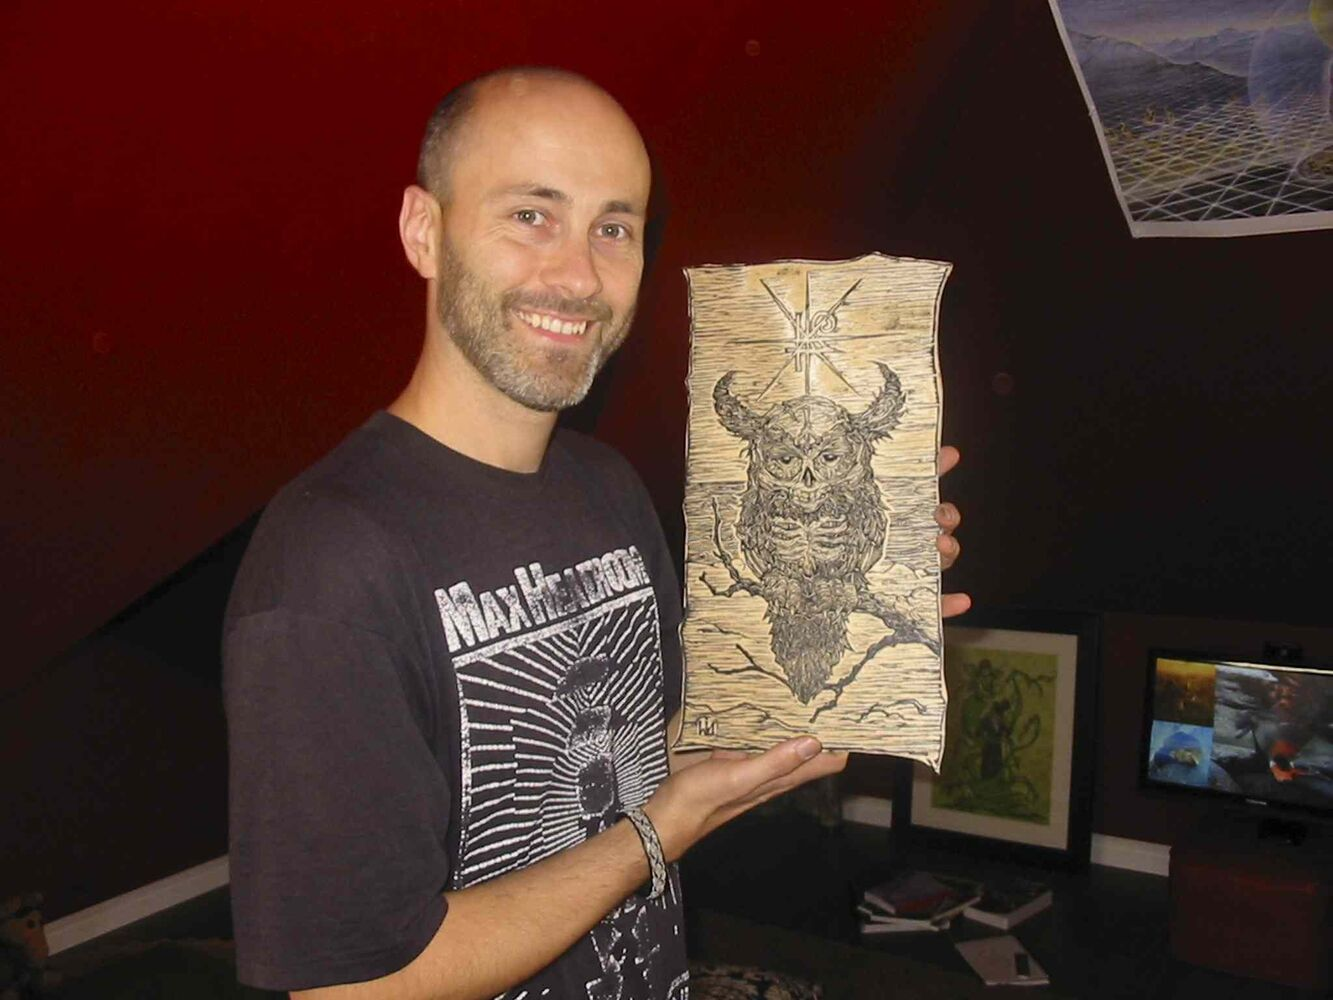 Darcy J. Watt with a woodcut of a mythic creature.